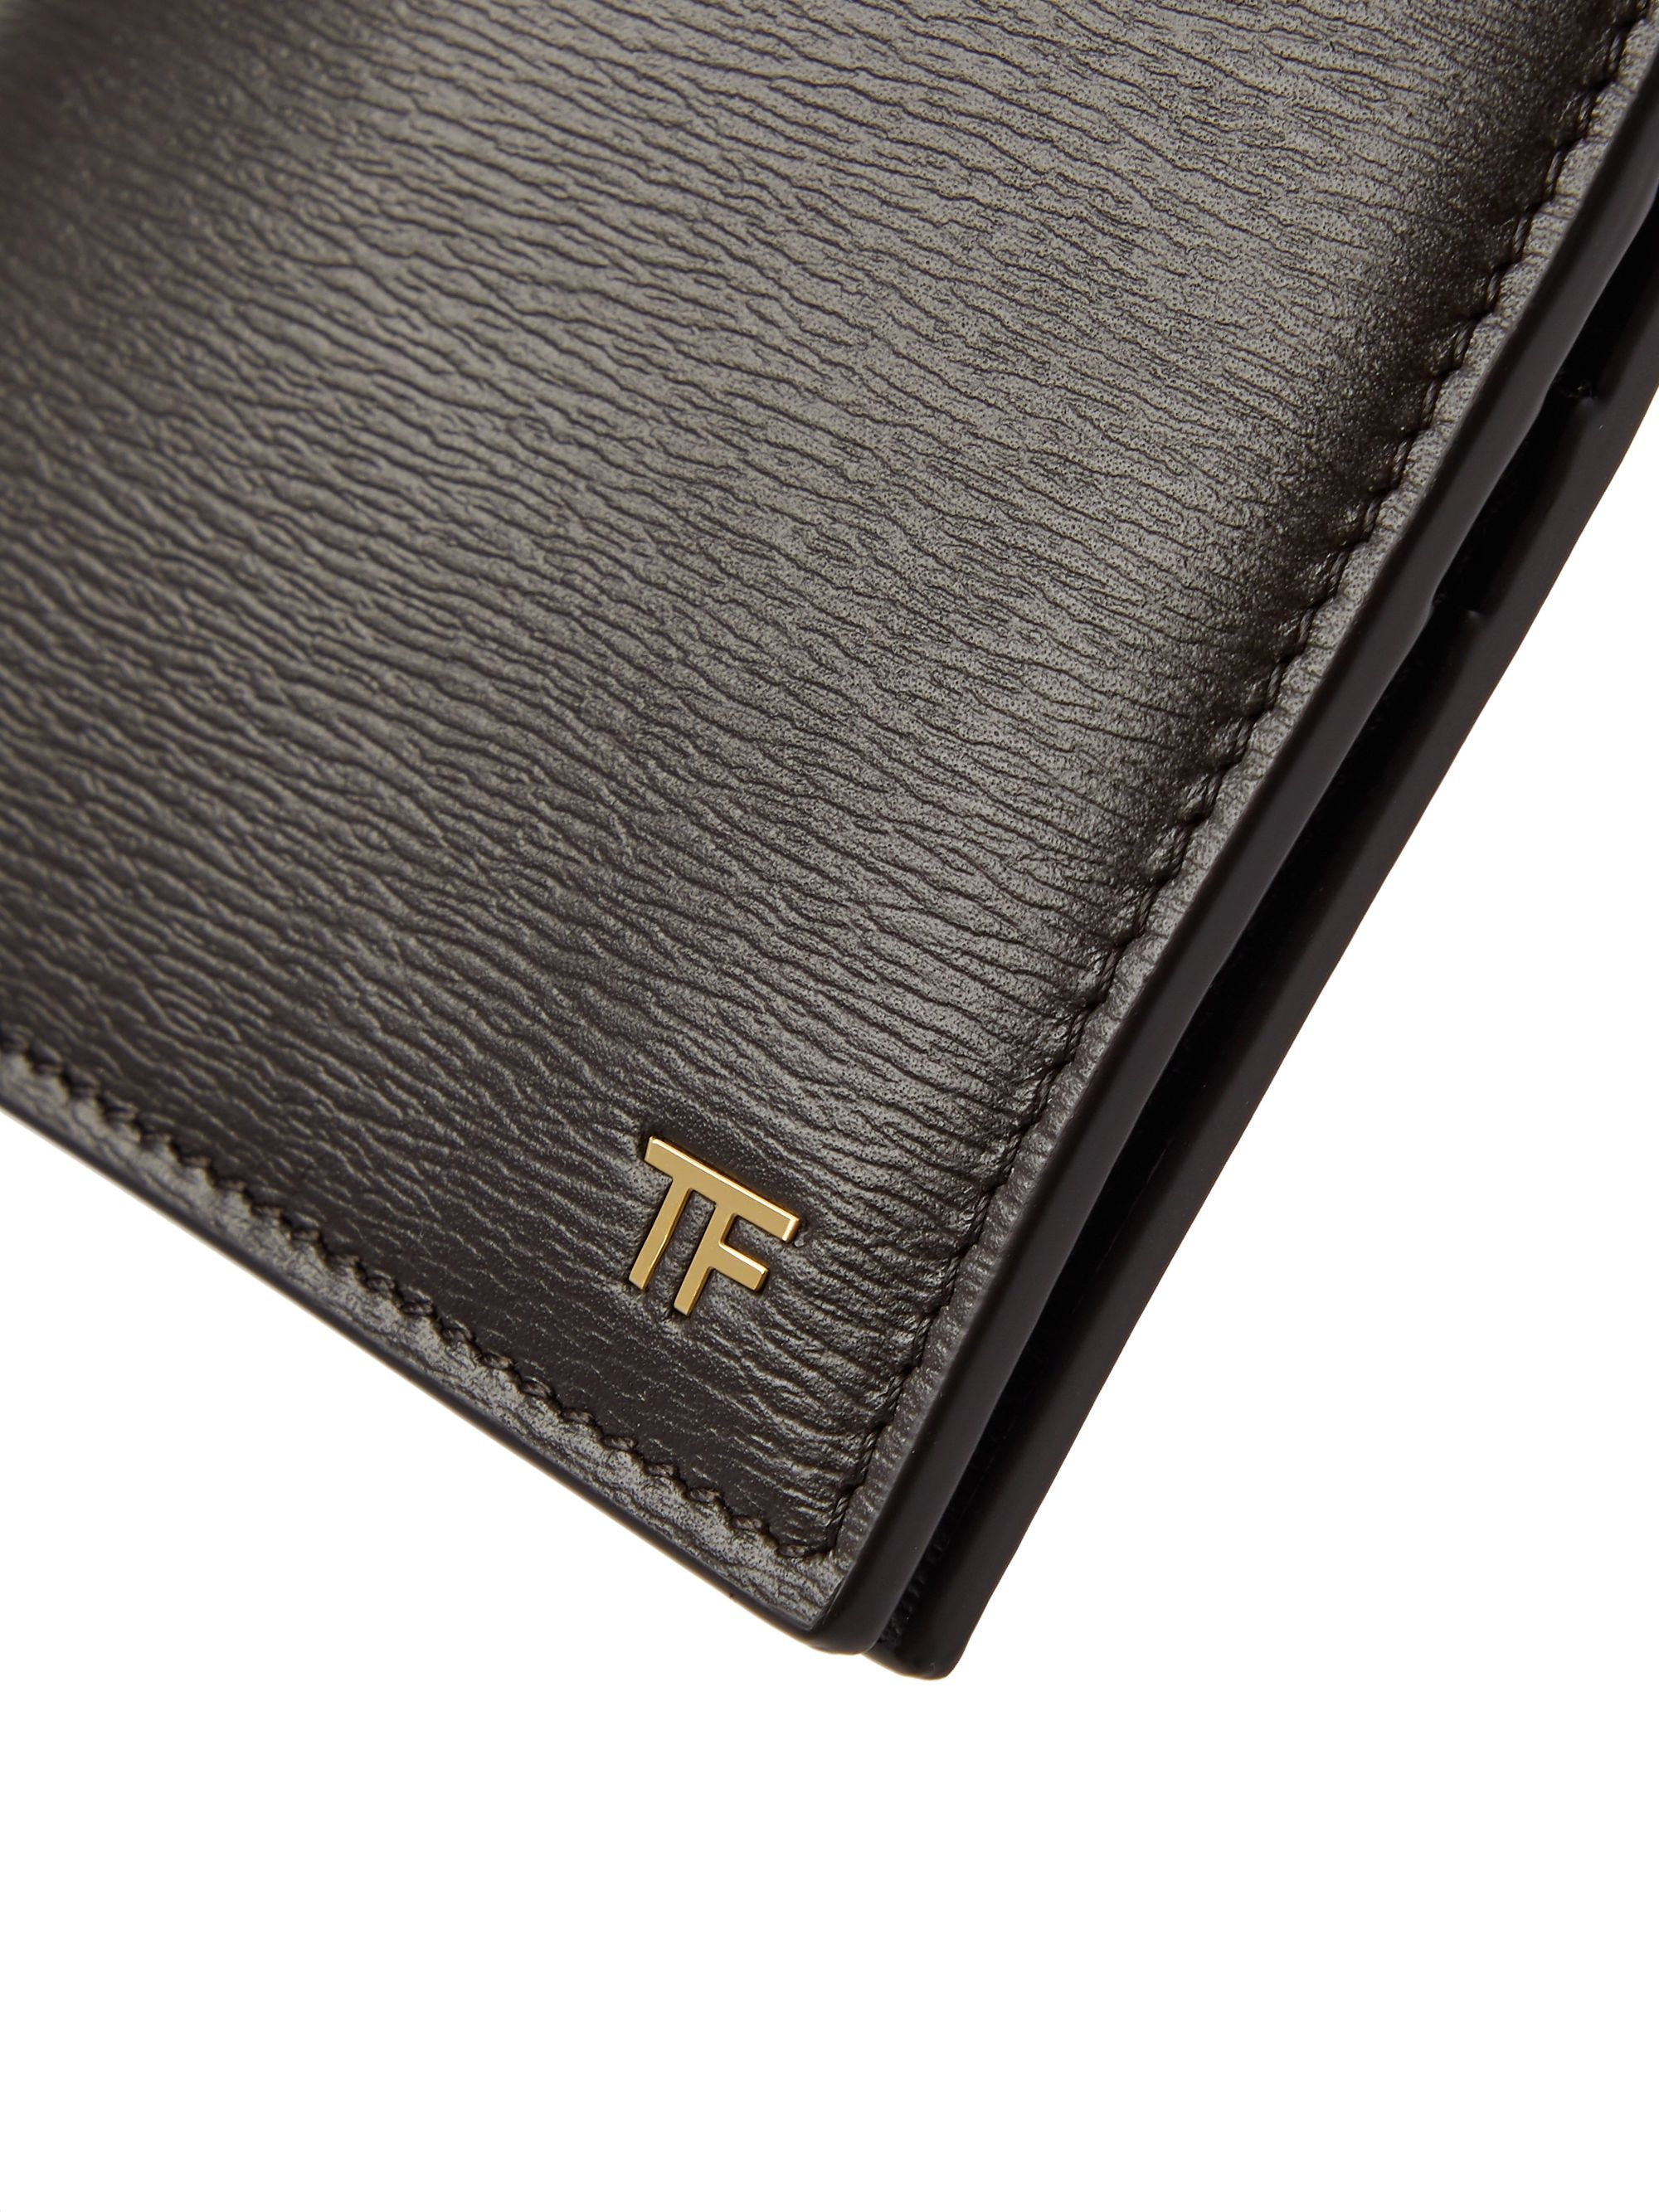 TOM FORD Textured-Leather Billfold Wallet